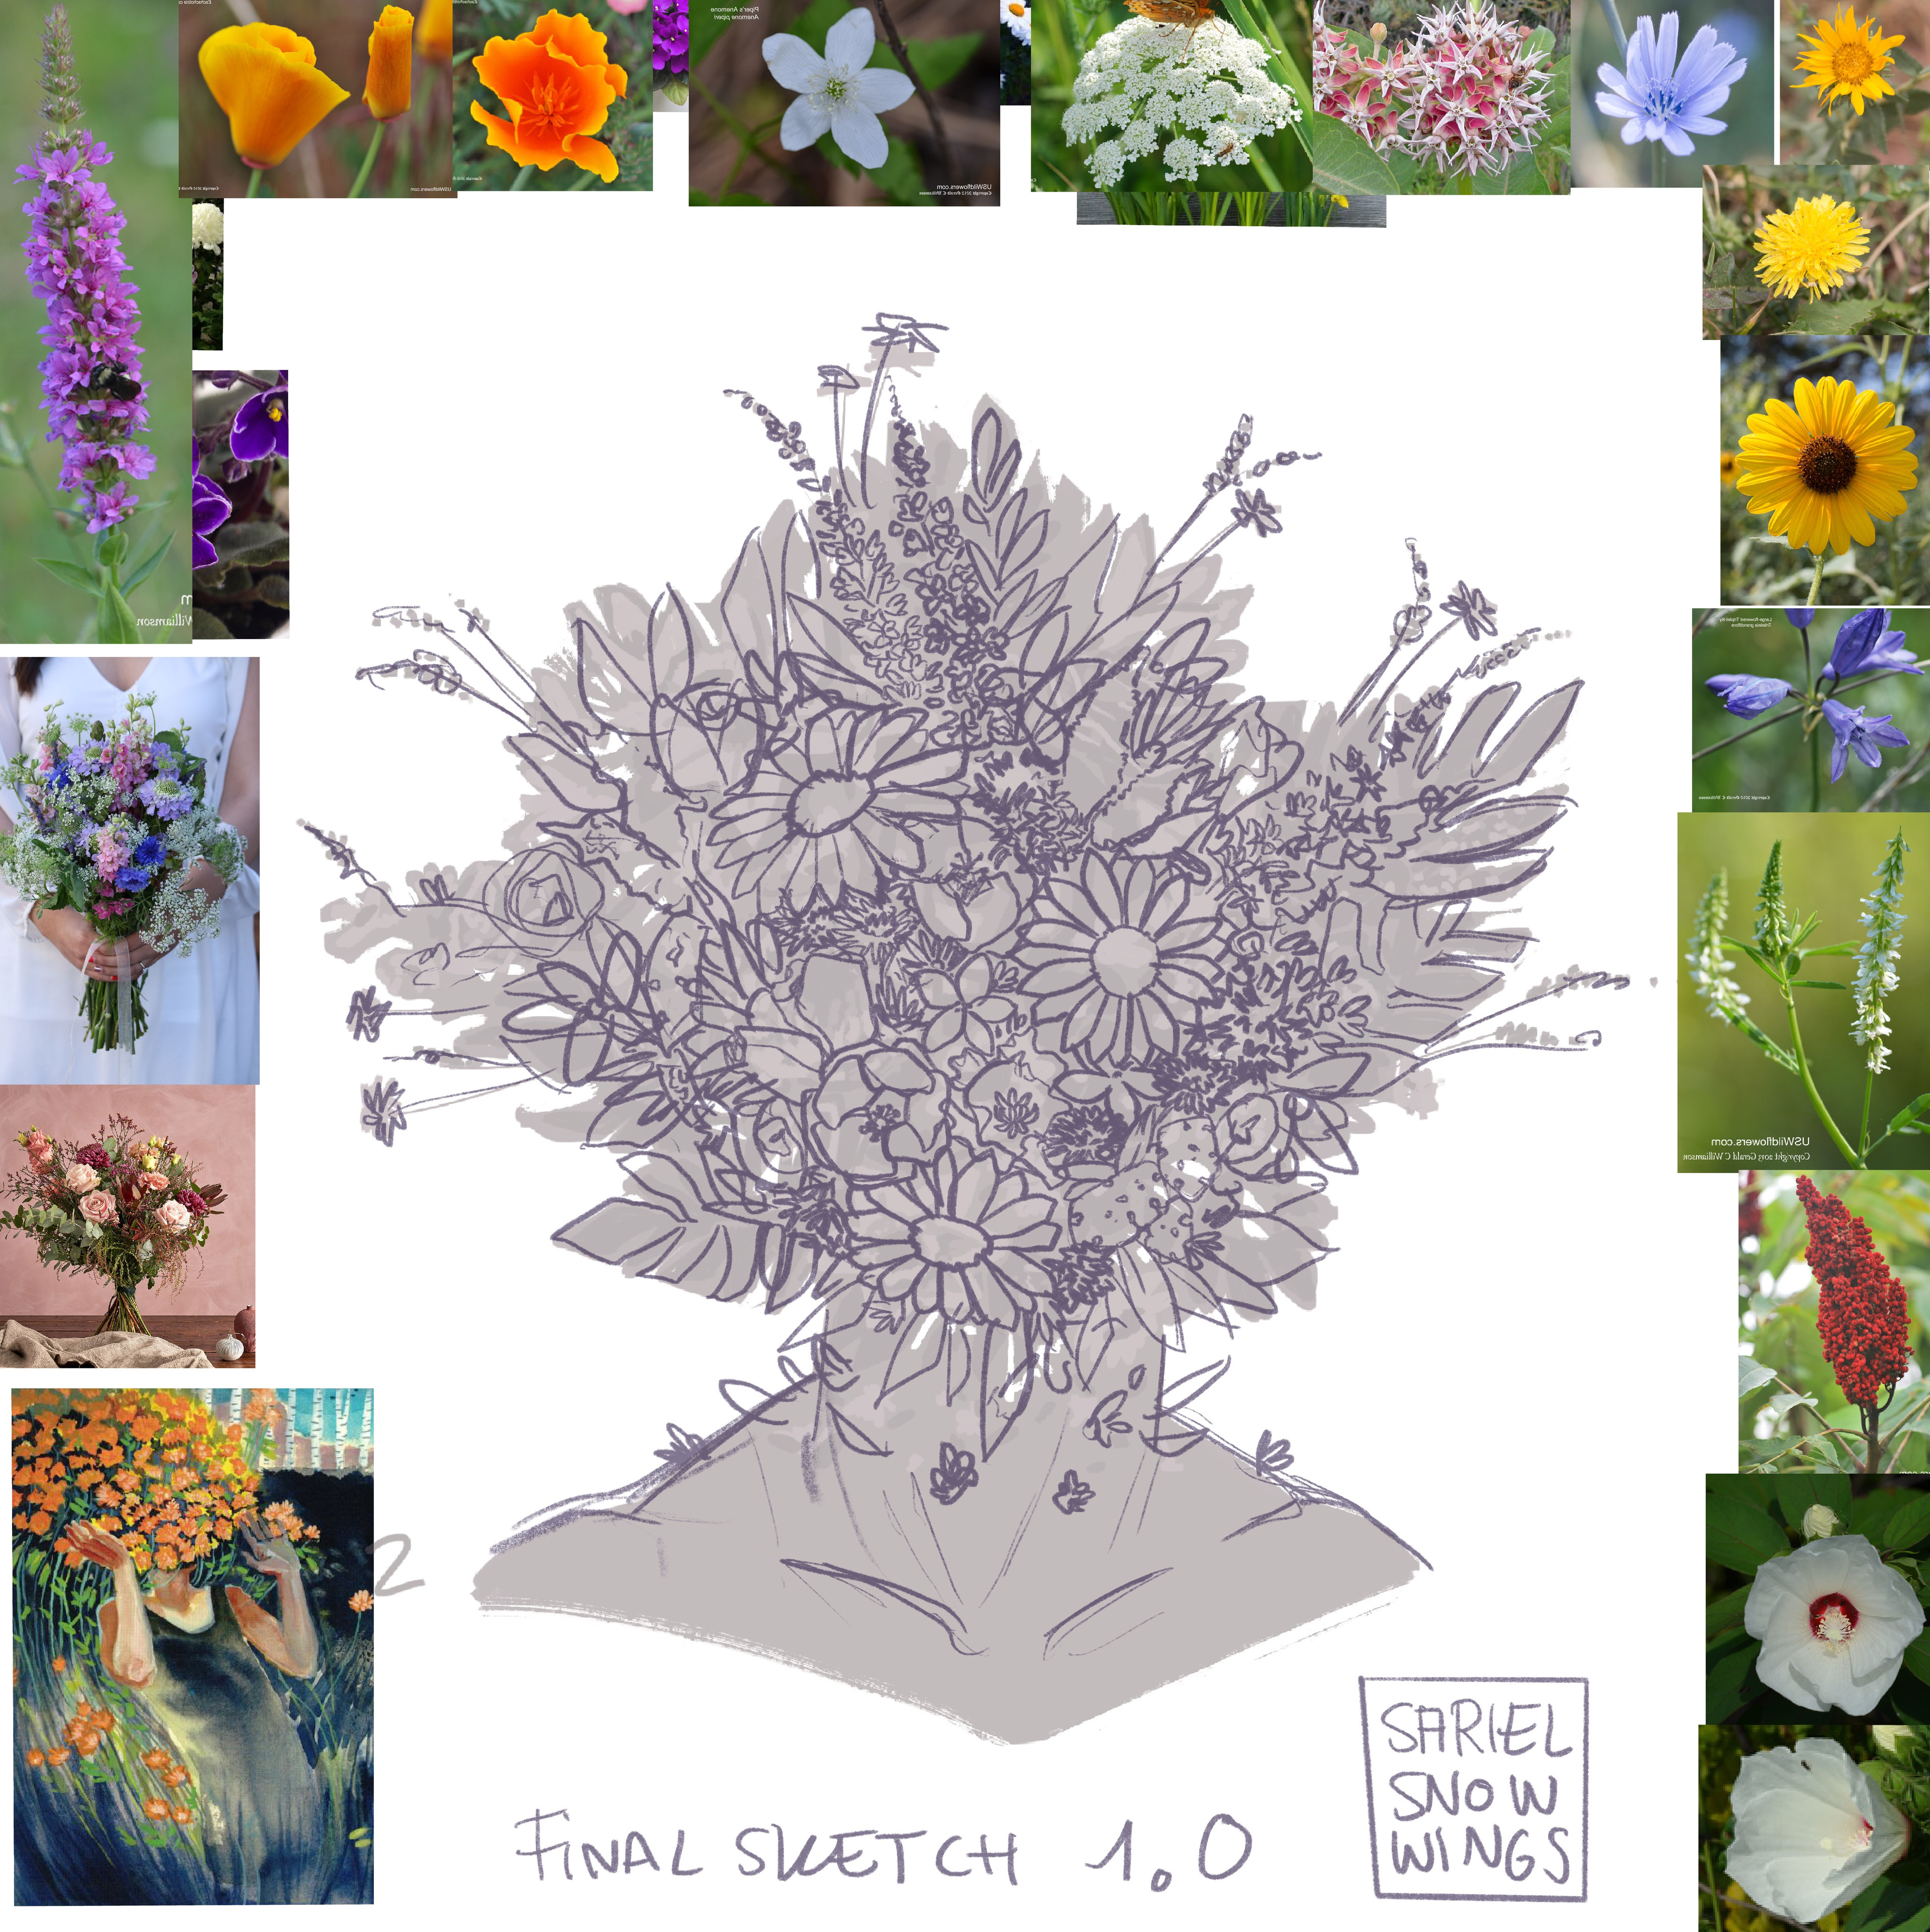 Final sketch for the portrait. The bouquet includes an amalgamation of flowers native to the client's state of Utah